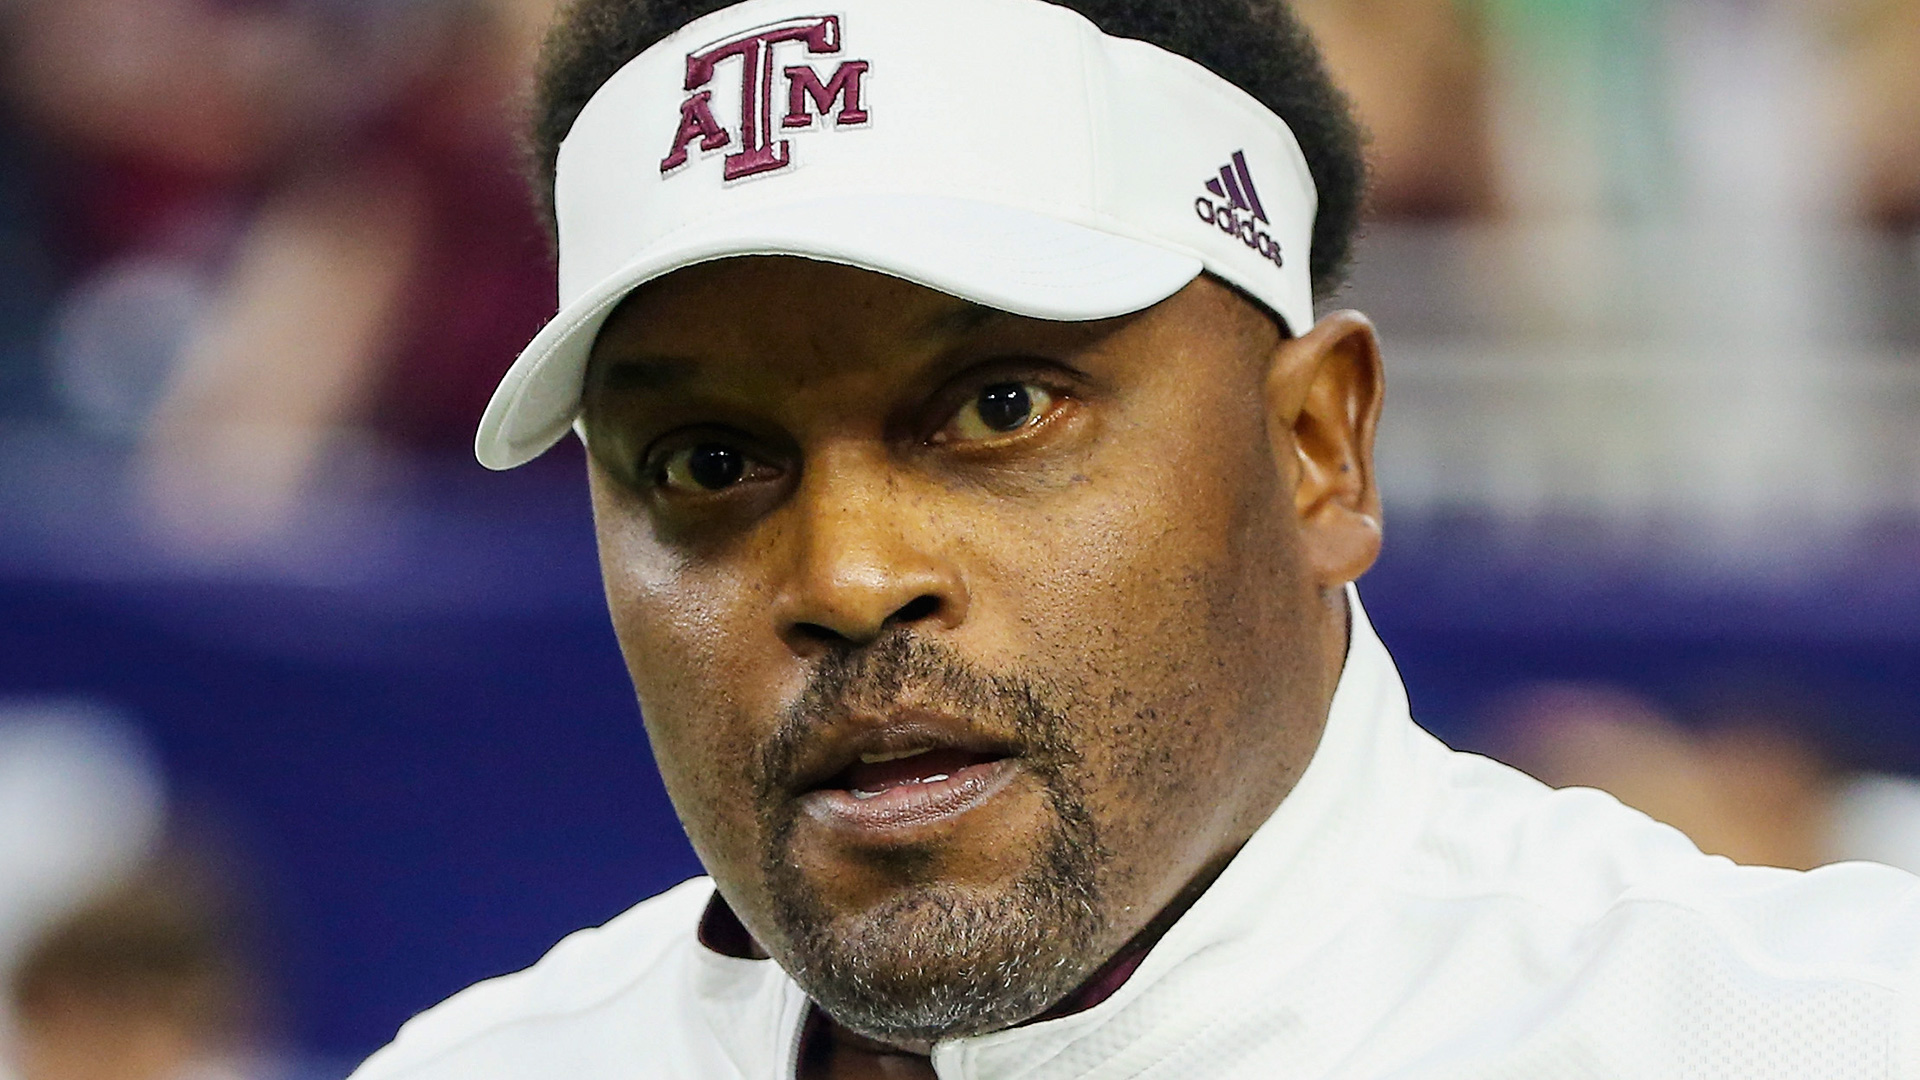 Texas A&M preparing to move on from coach Kevin Sumlin after 2017, per reports